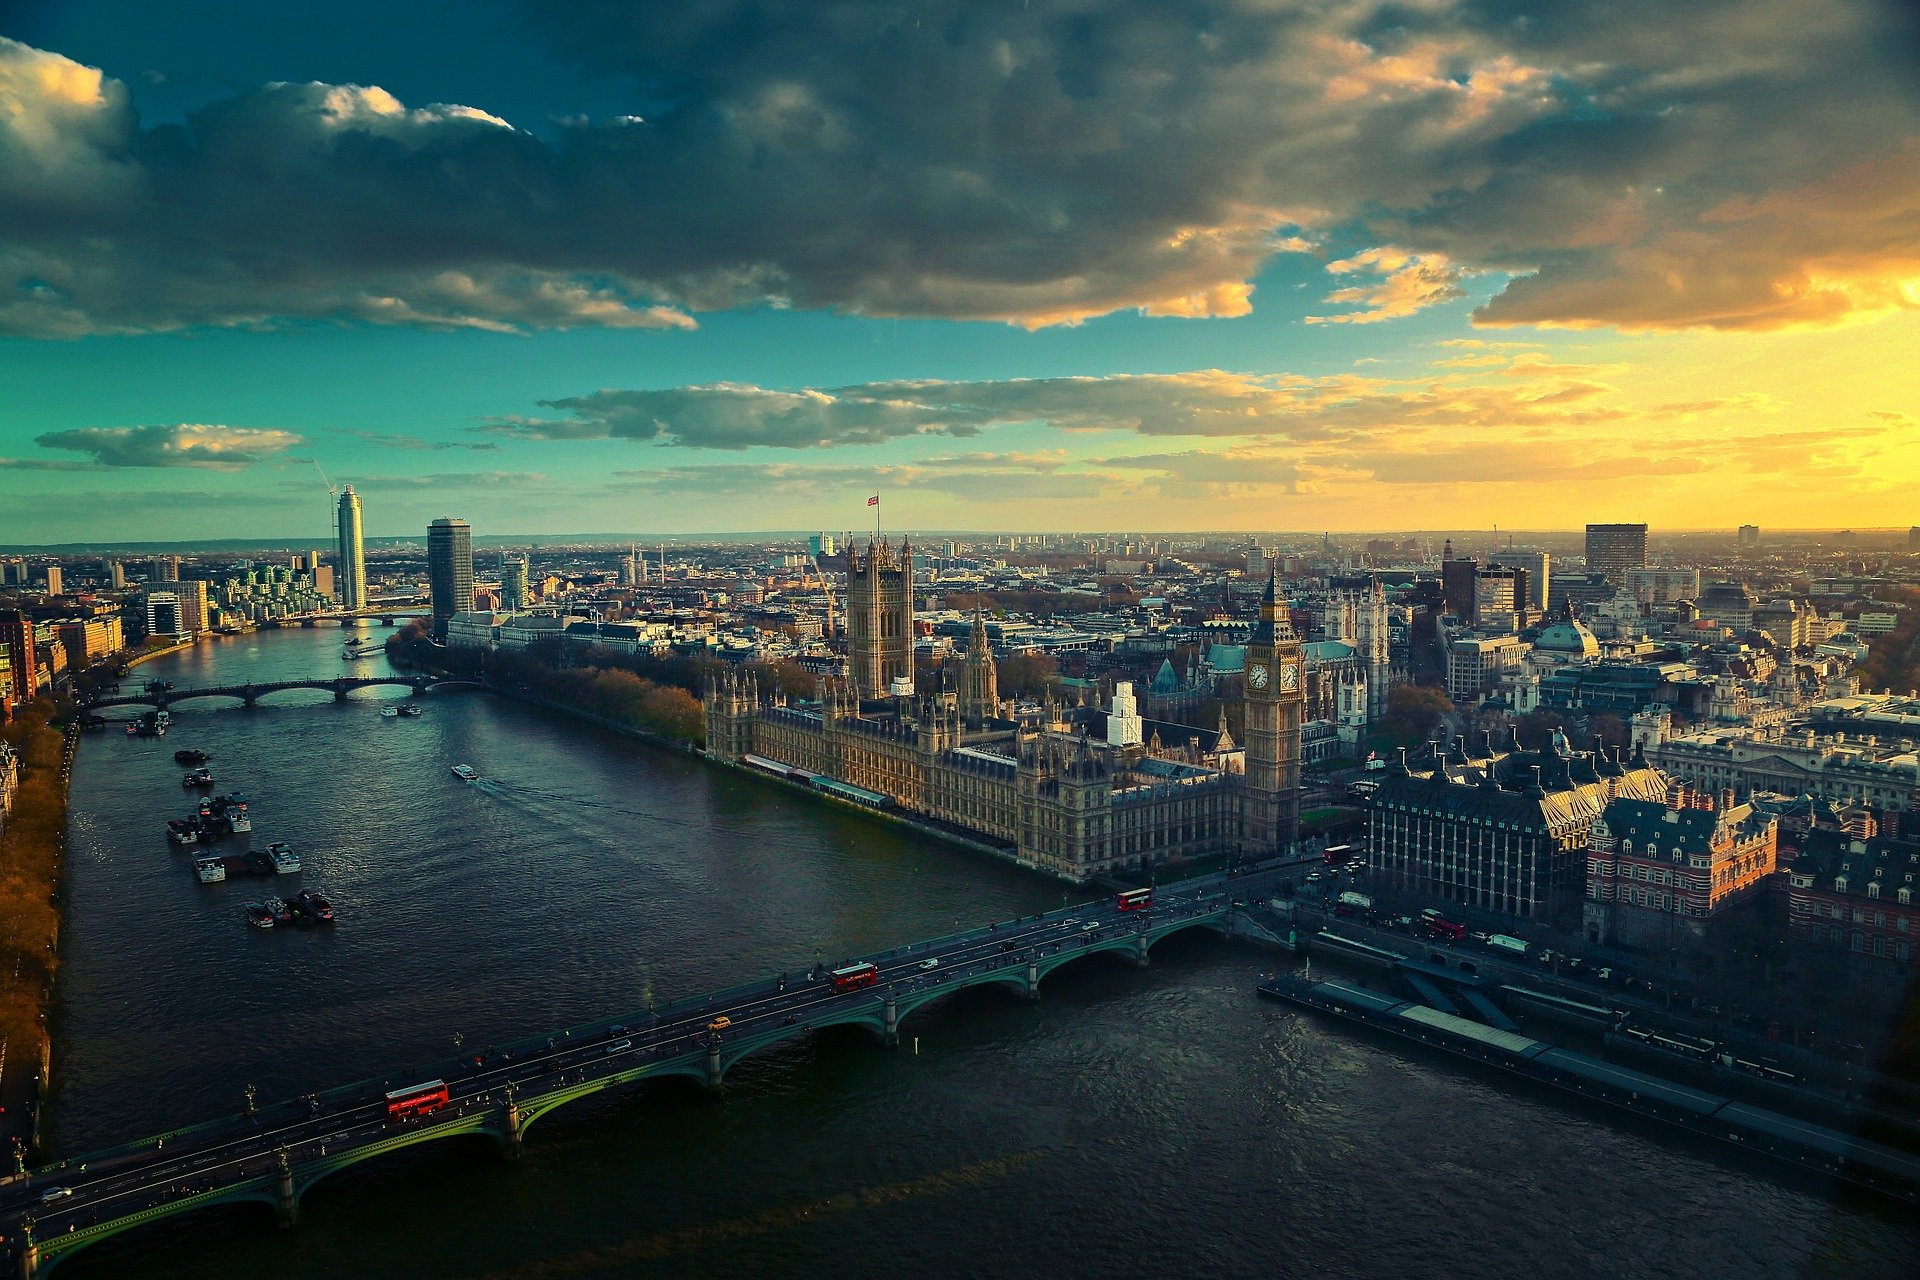 London has significant rooftop solar potential, according to Solar Energy UK